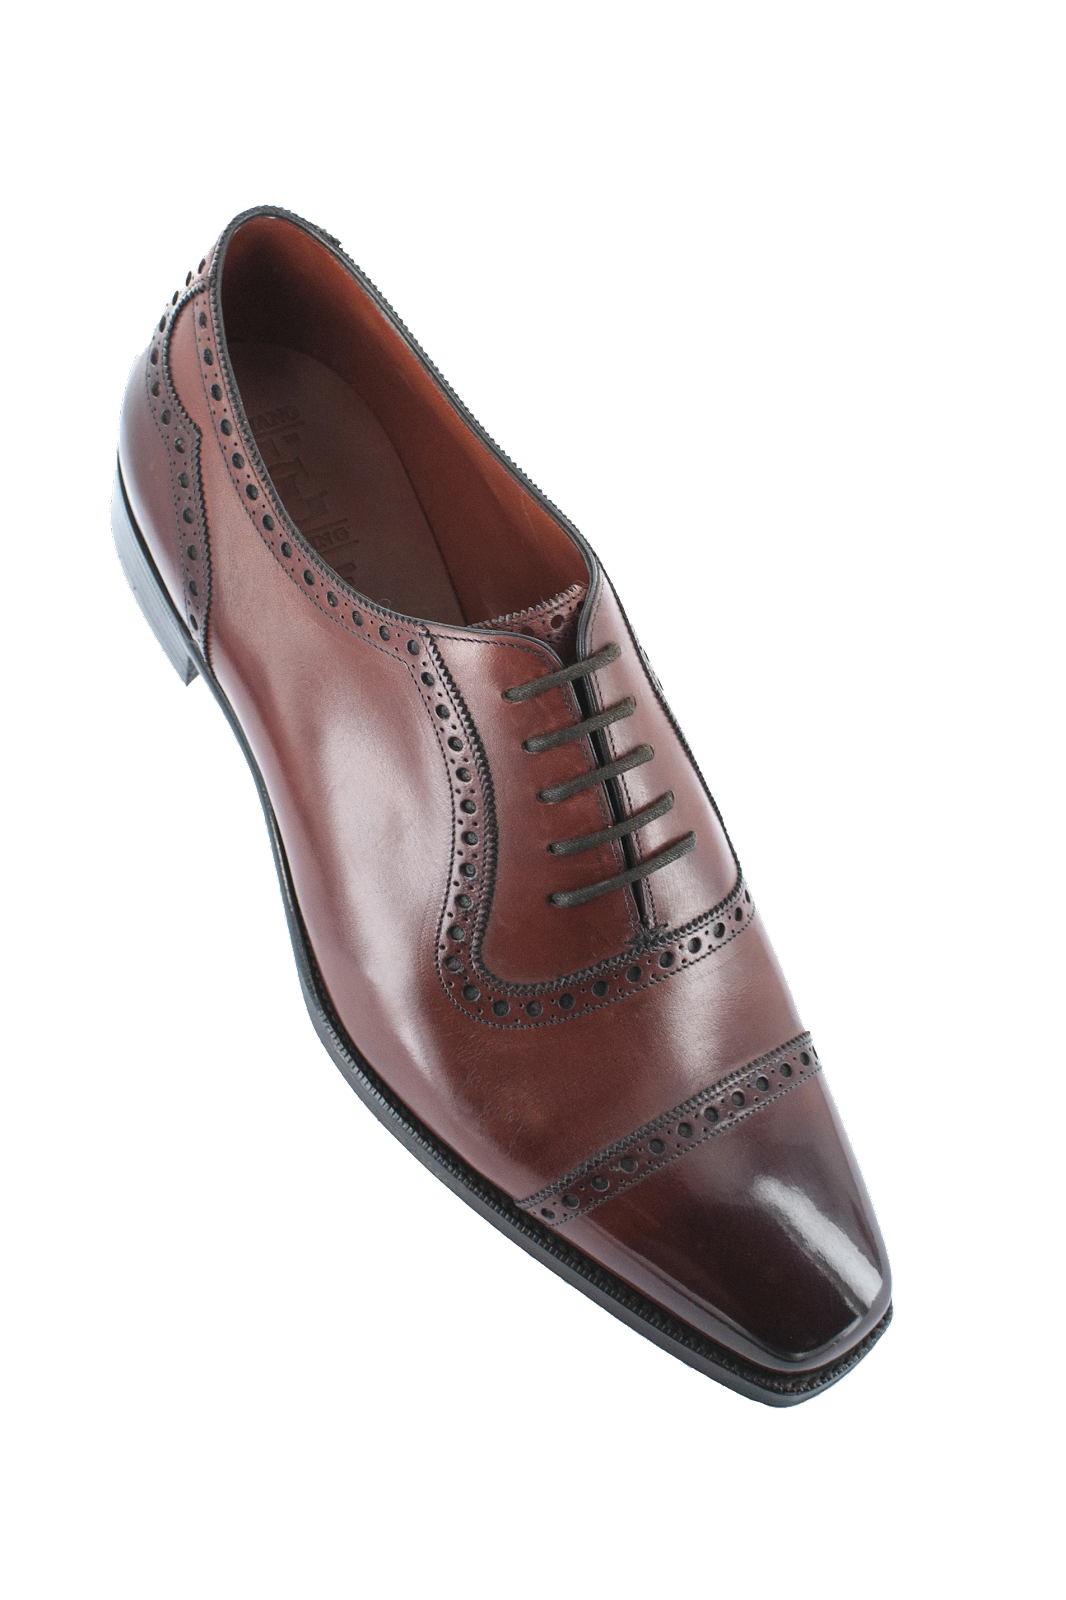 Online Dress Shoes Shopping